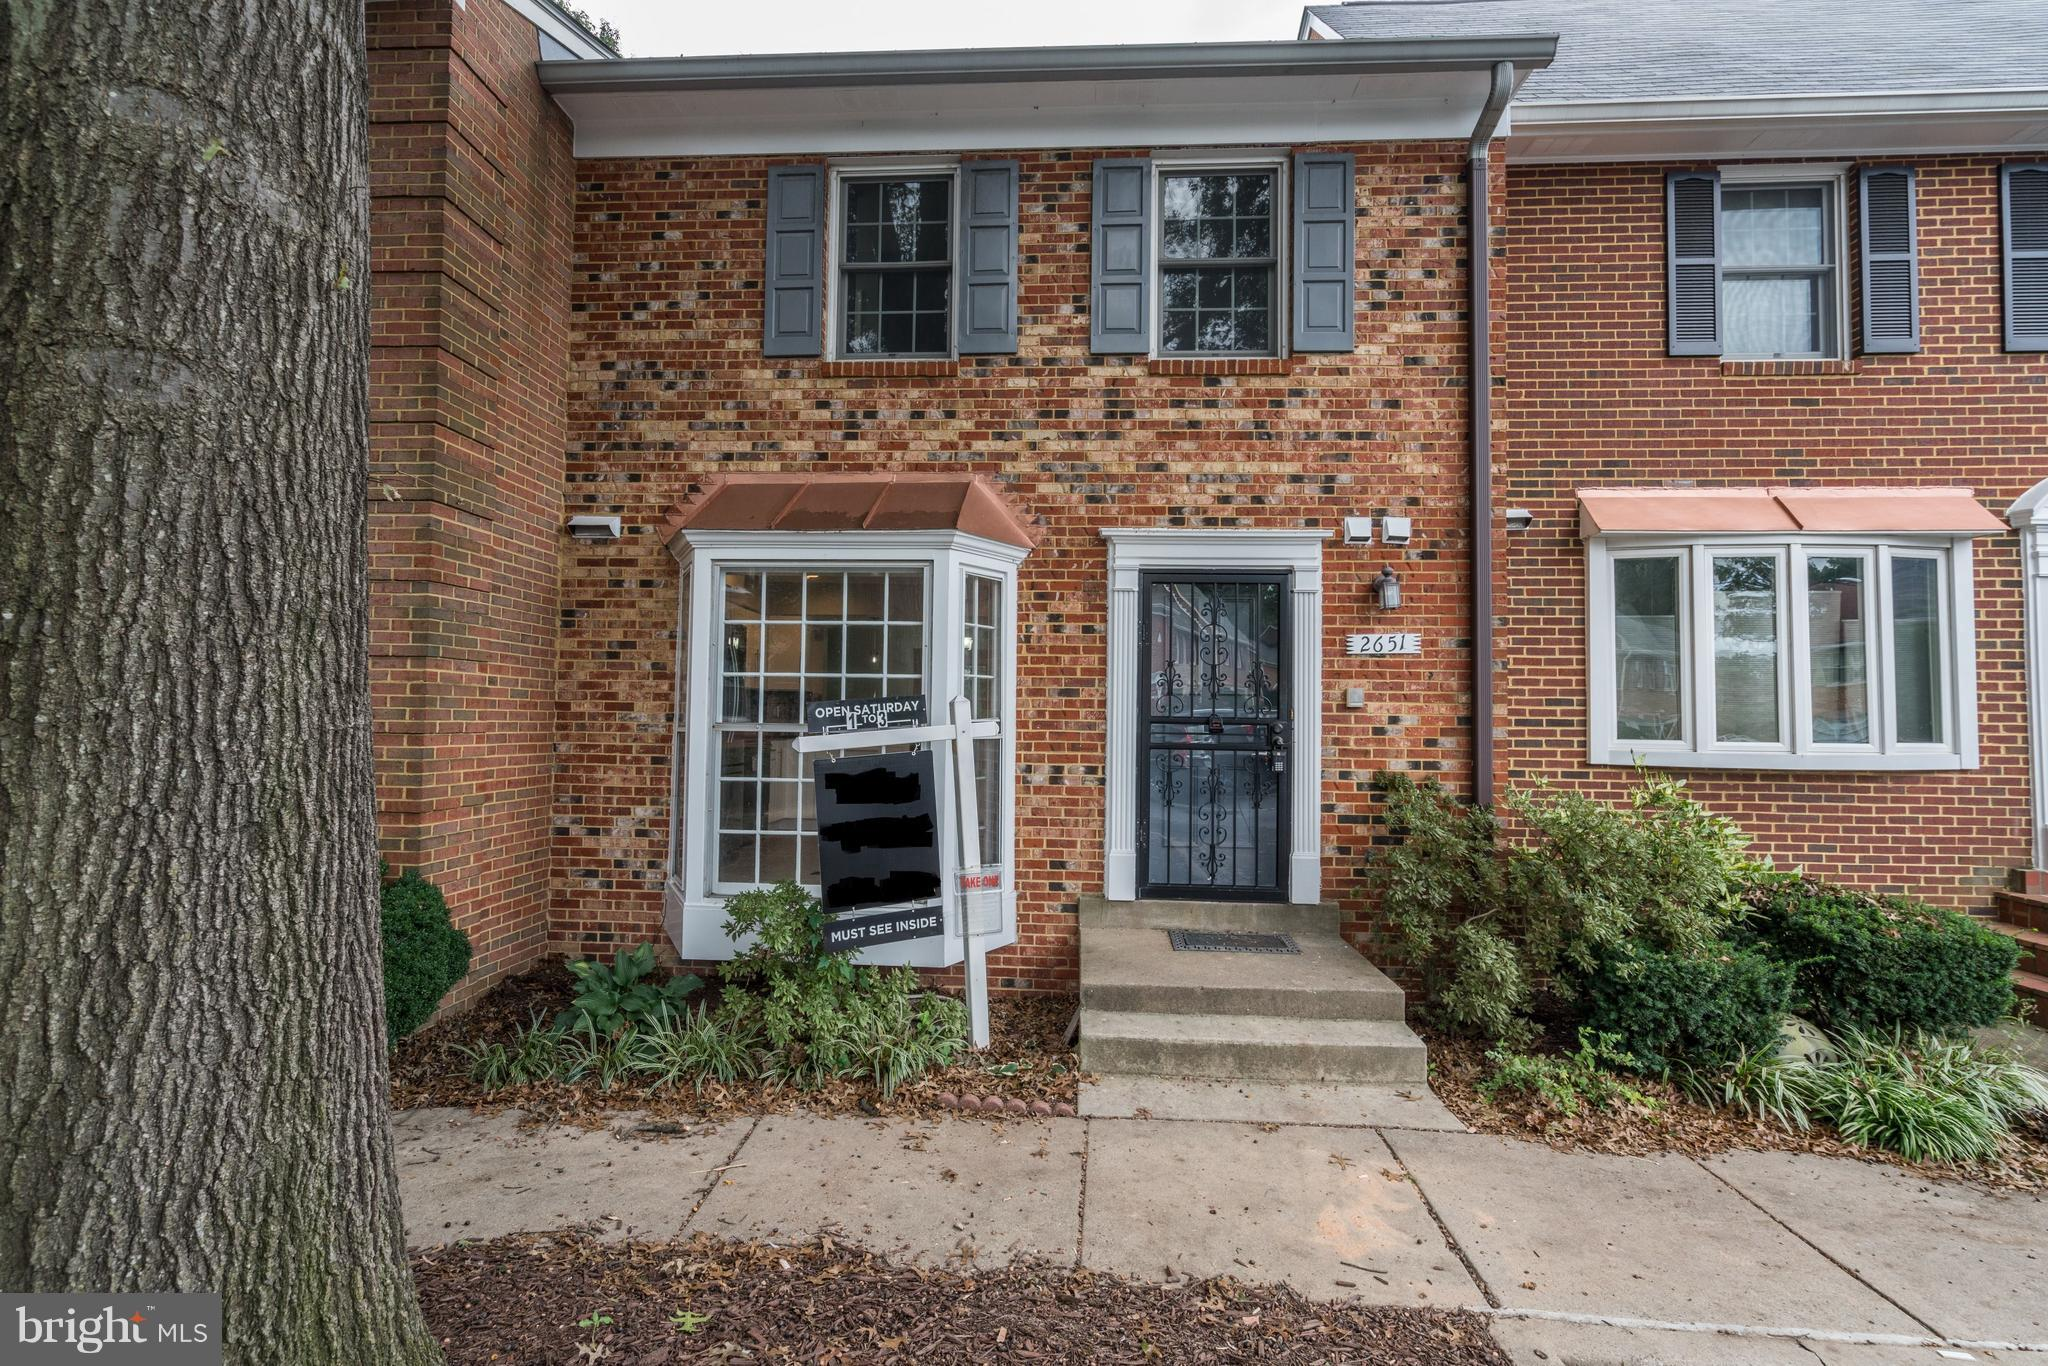 Beautifully Renovated Town Home in Seminary Heights! Two Master Bedroom Suites, Spacious Living Room, Separate Dining Room w/ Chair Rail, Kitchen w/ Table Space, Recreation Room w/ Wet Bar, Den, Georgetown Style Patio, Assigned Parking at the Front Door & One Guest Parking Pass, Close Proximity to DC, Downtown Alexandria, & More!